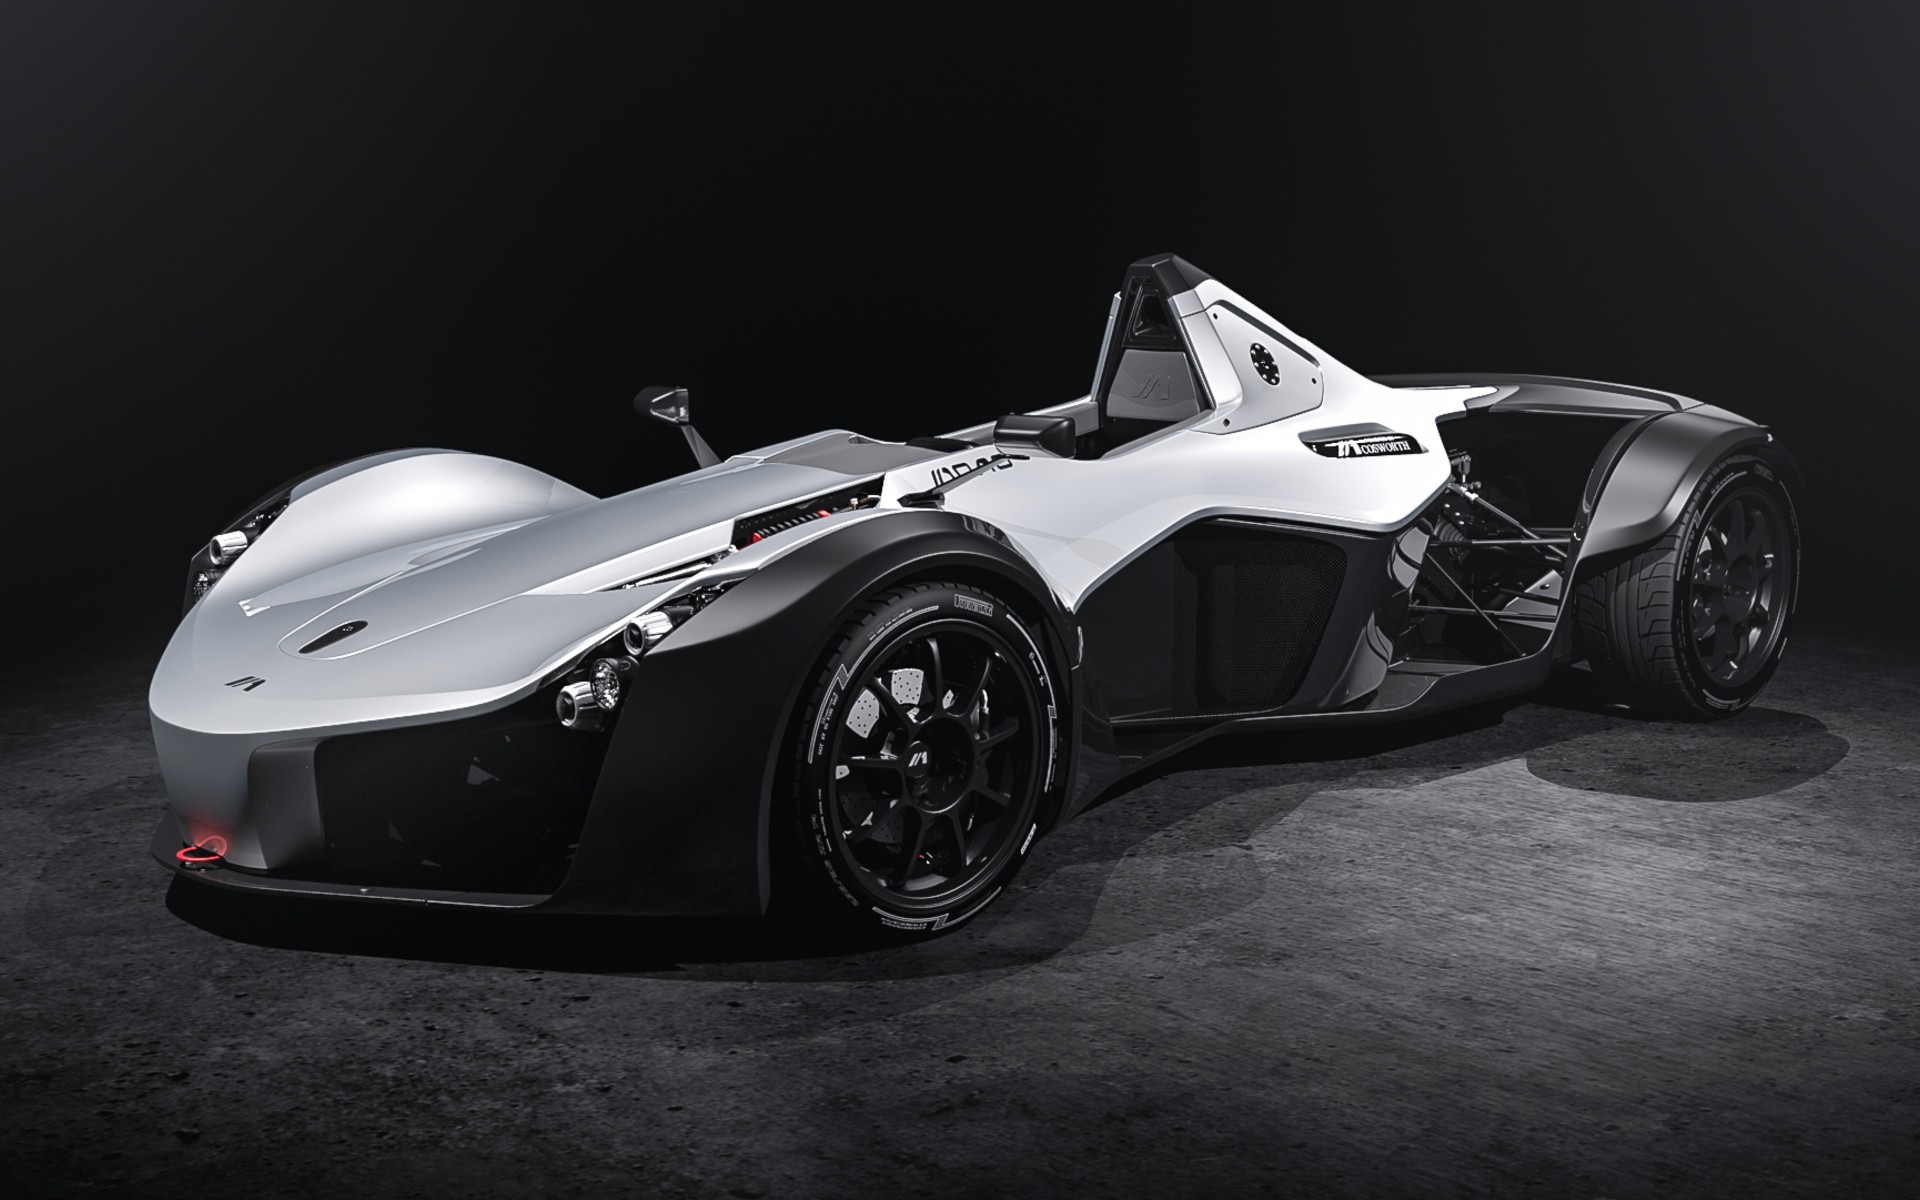 1920x1200 Race Car 1080p Resolution Hd 4k Wallpapers Images Backgrounds Photos And Pictures